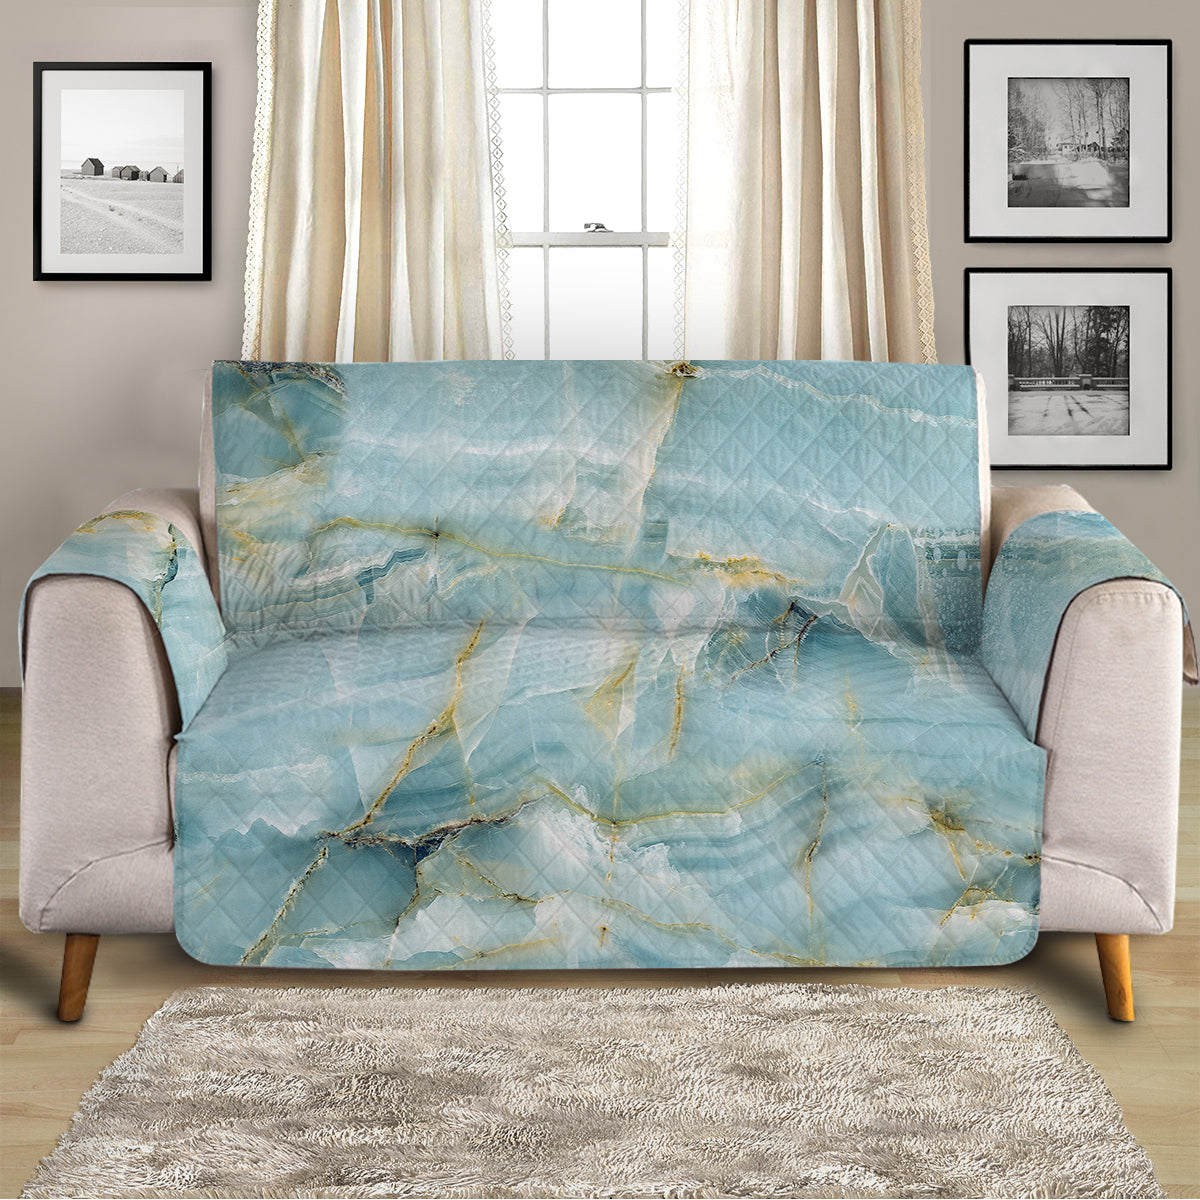 Whitehaven Beach Sofa Cover